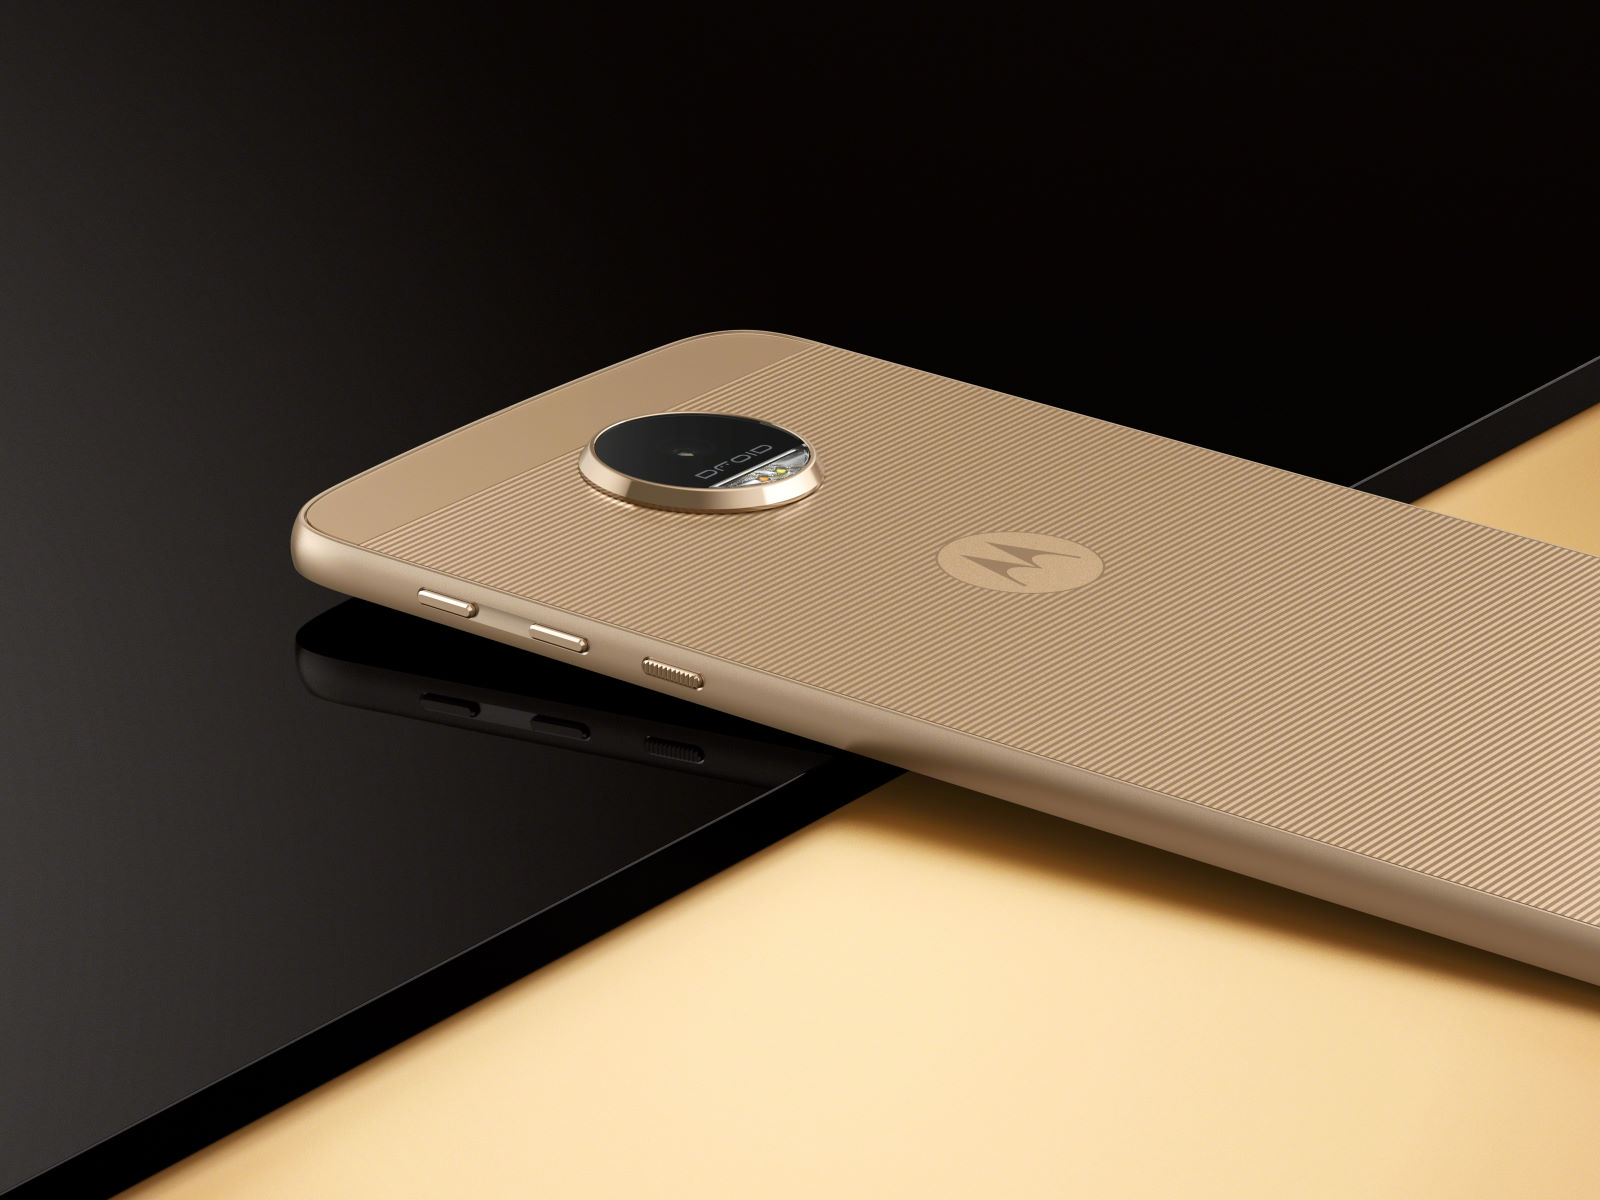 Photo of the model, bodybuilder and extras: Motorola's new smartphones are here already